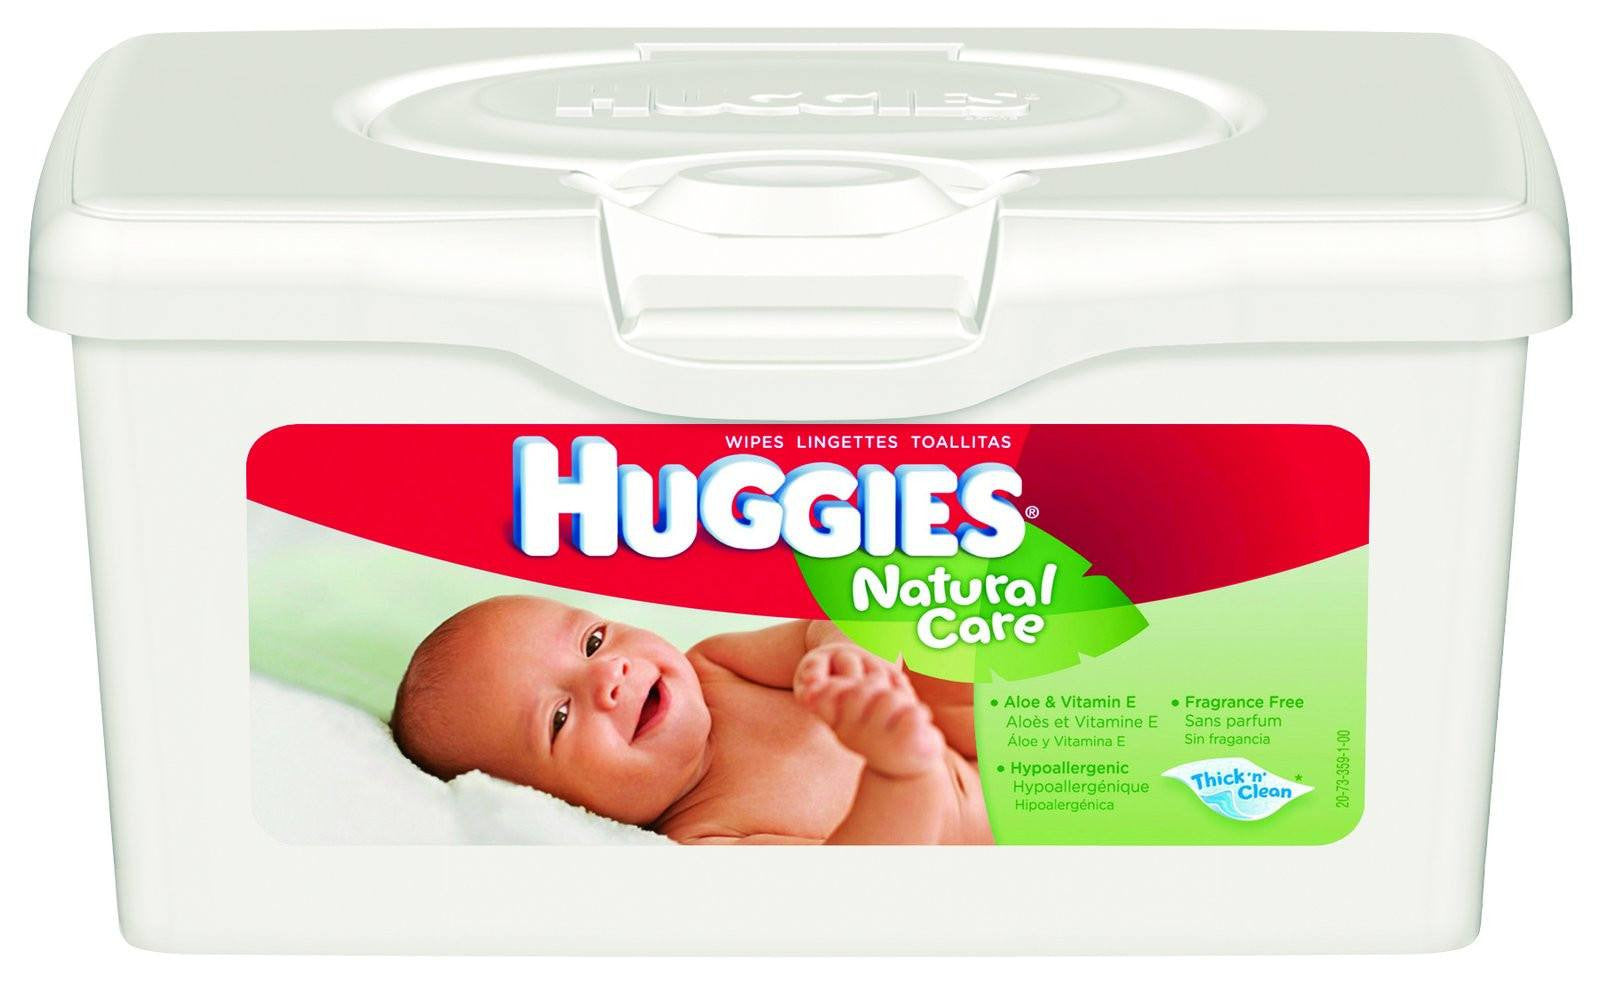 Buy Huggies Natural Care Wipes online used to treat Wet & Dry Wipes - Medical Conditions